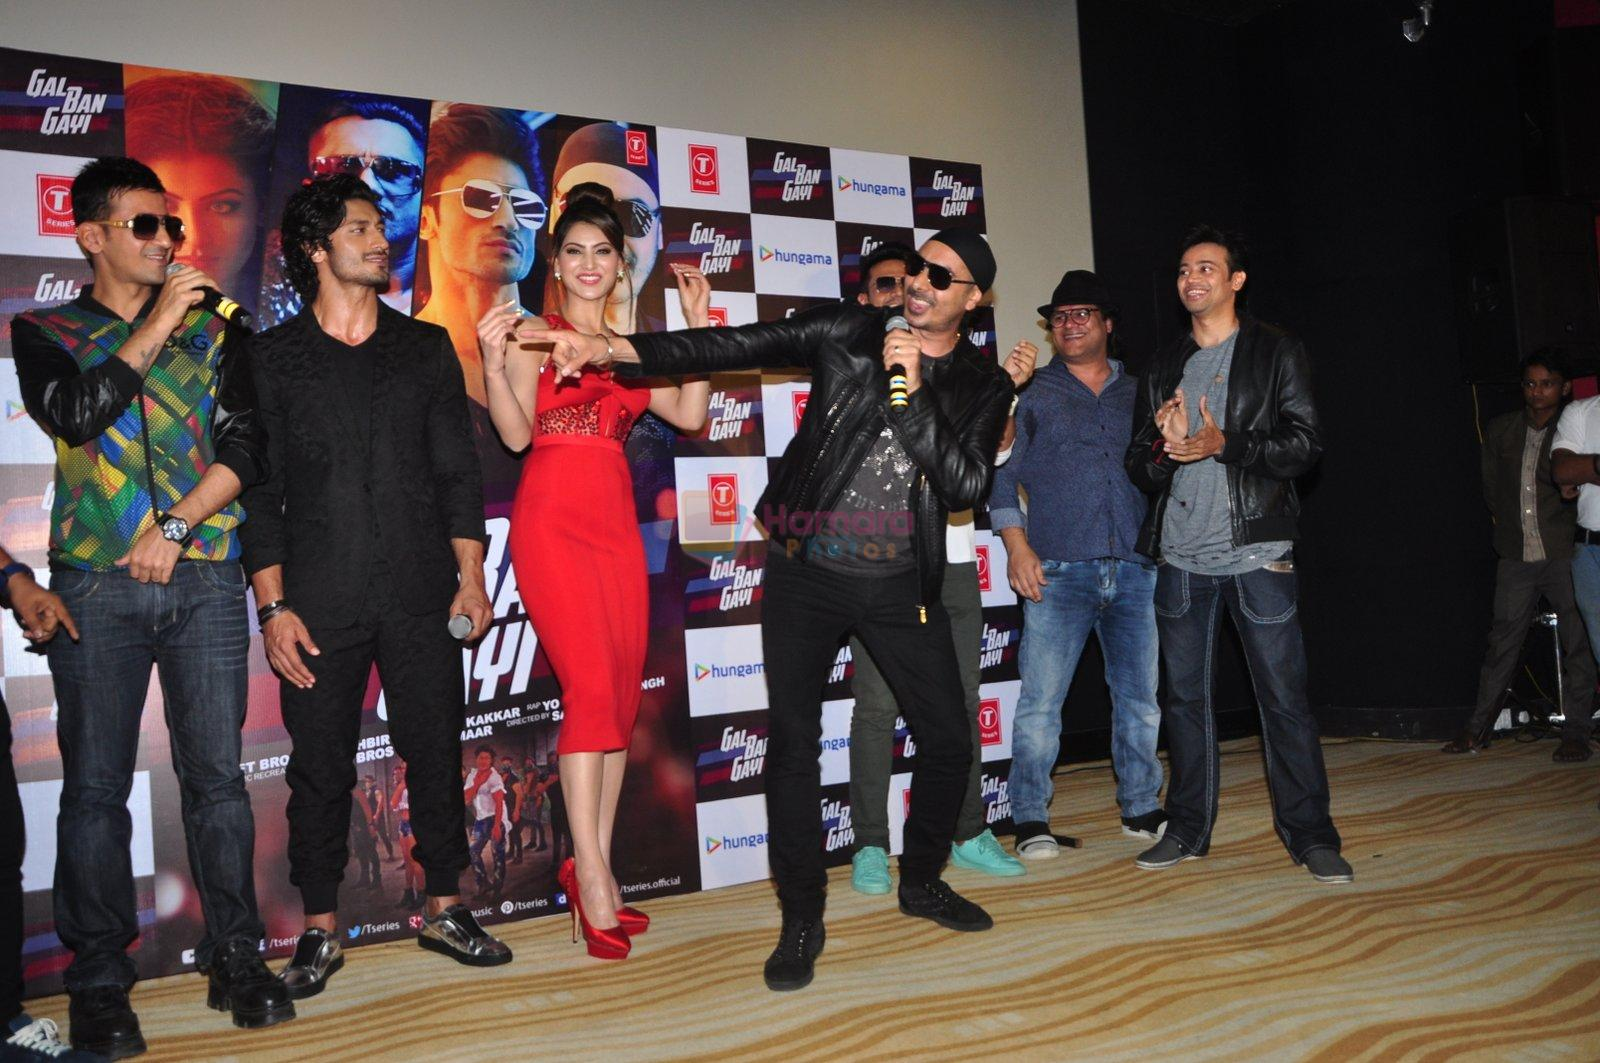 Urvashi Rautela, Vidyut Jamwal, Harmeet Singh, Sukhbir Singh and Manmeet Singh during the launch of song Gal Ban Gayi in Mumbai on 7th Sept 2016